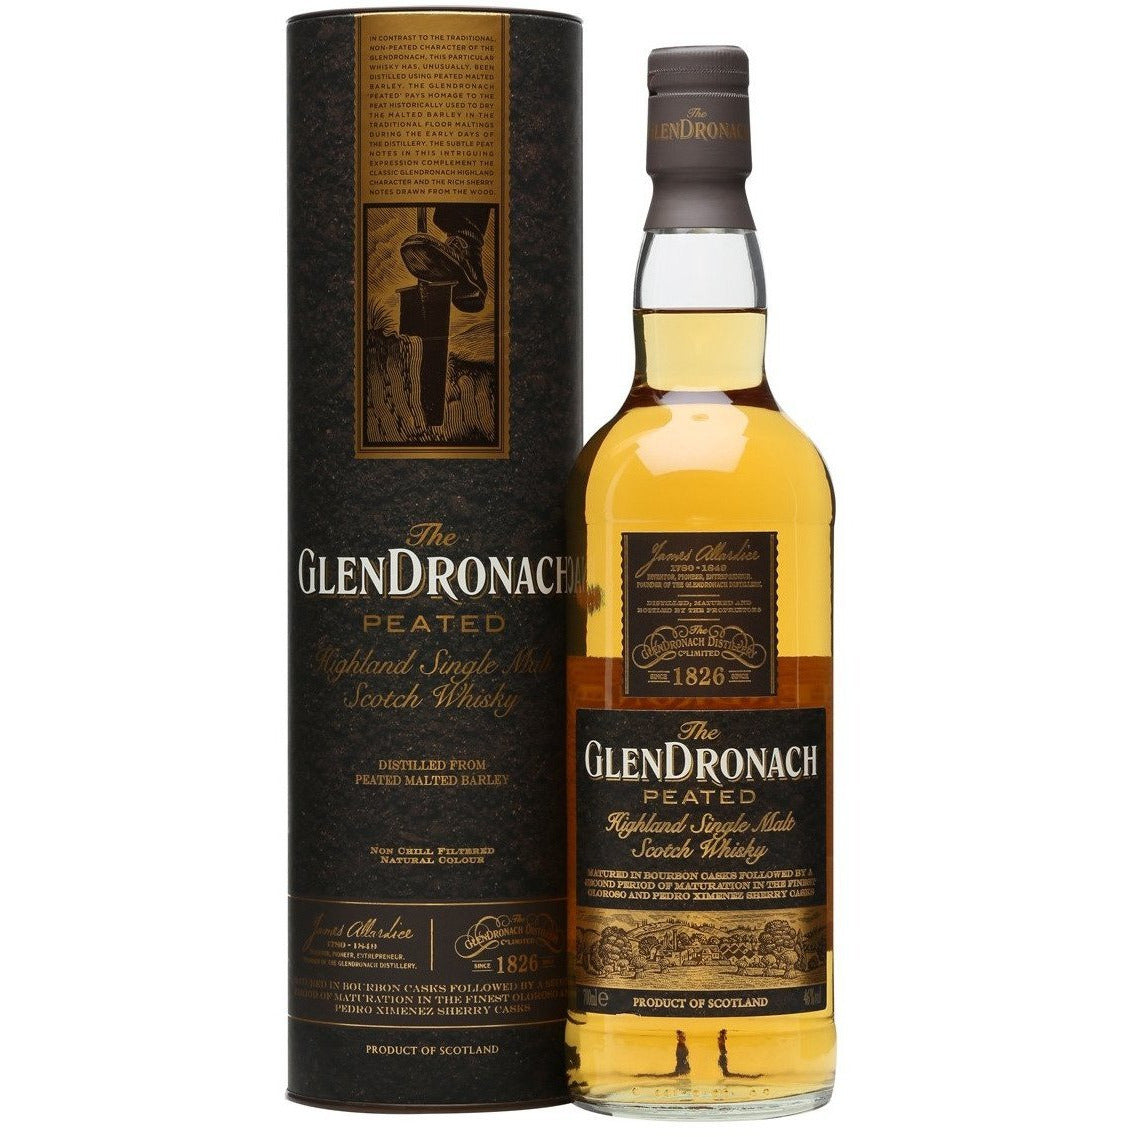 Glendronach Peated Highland Single Malt Scotch Whiskey